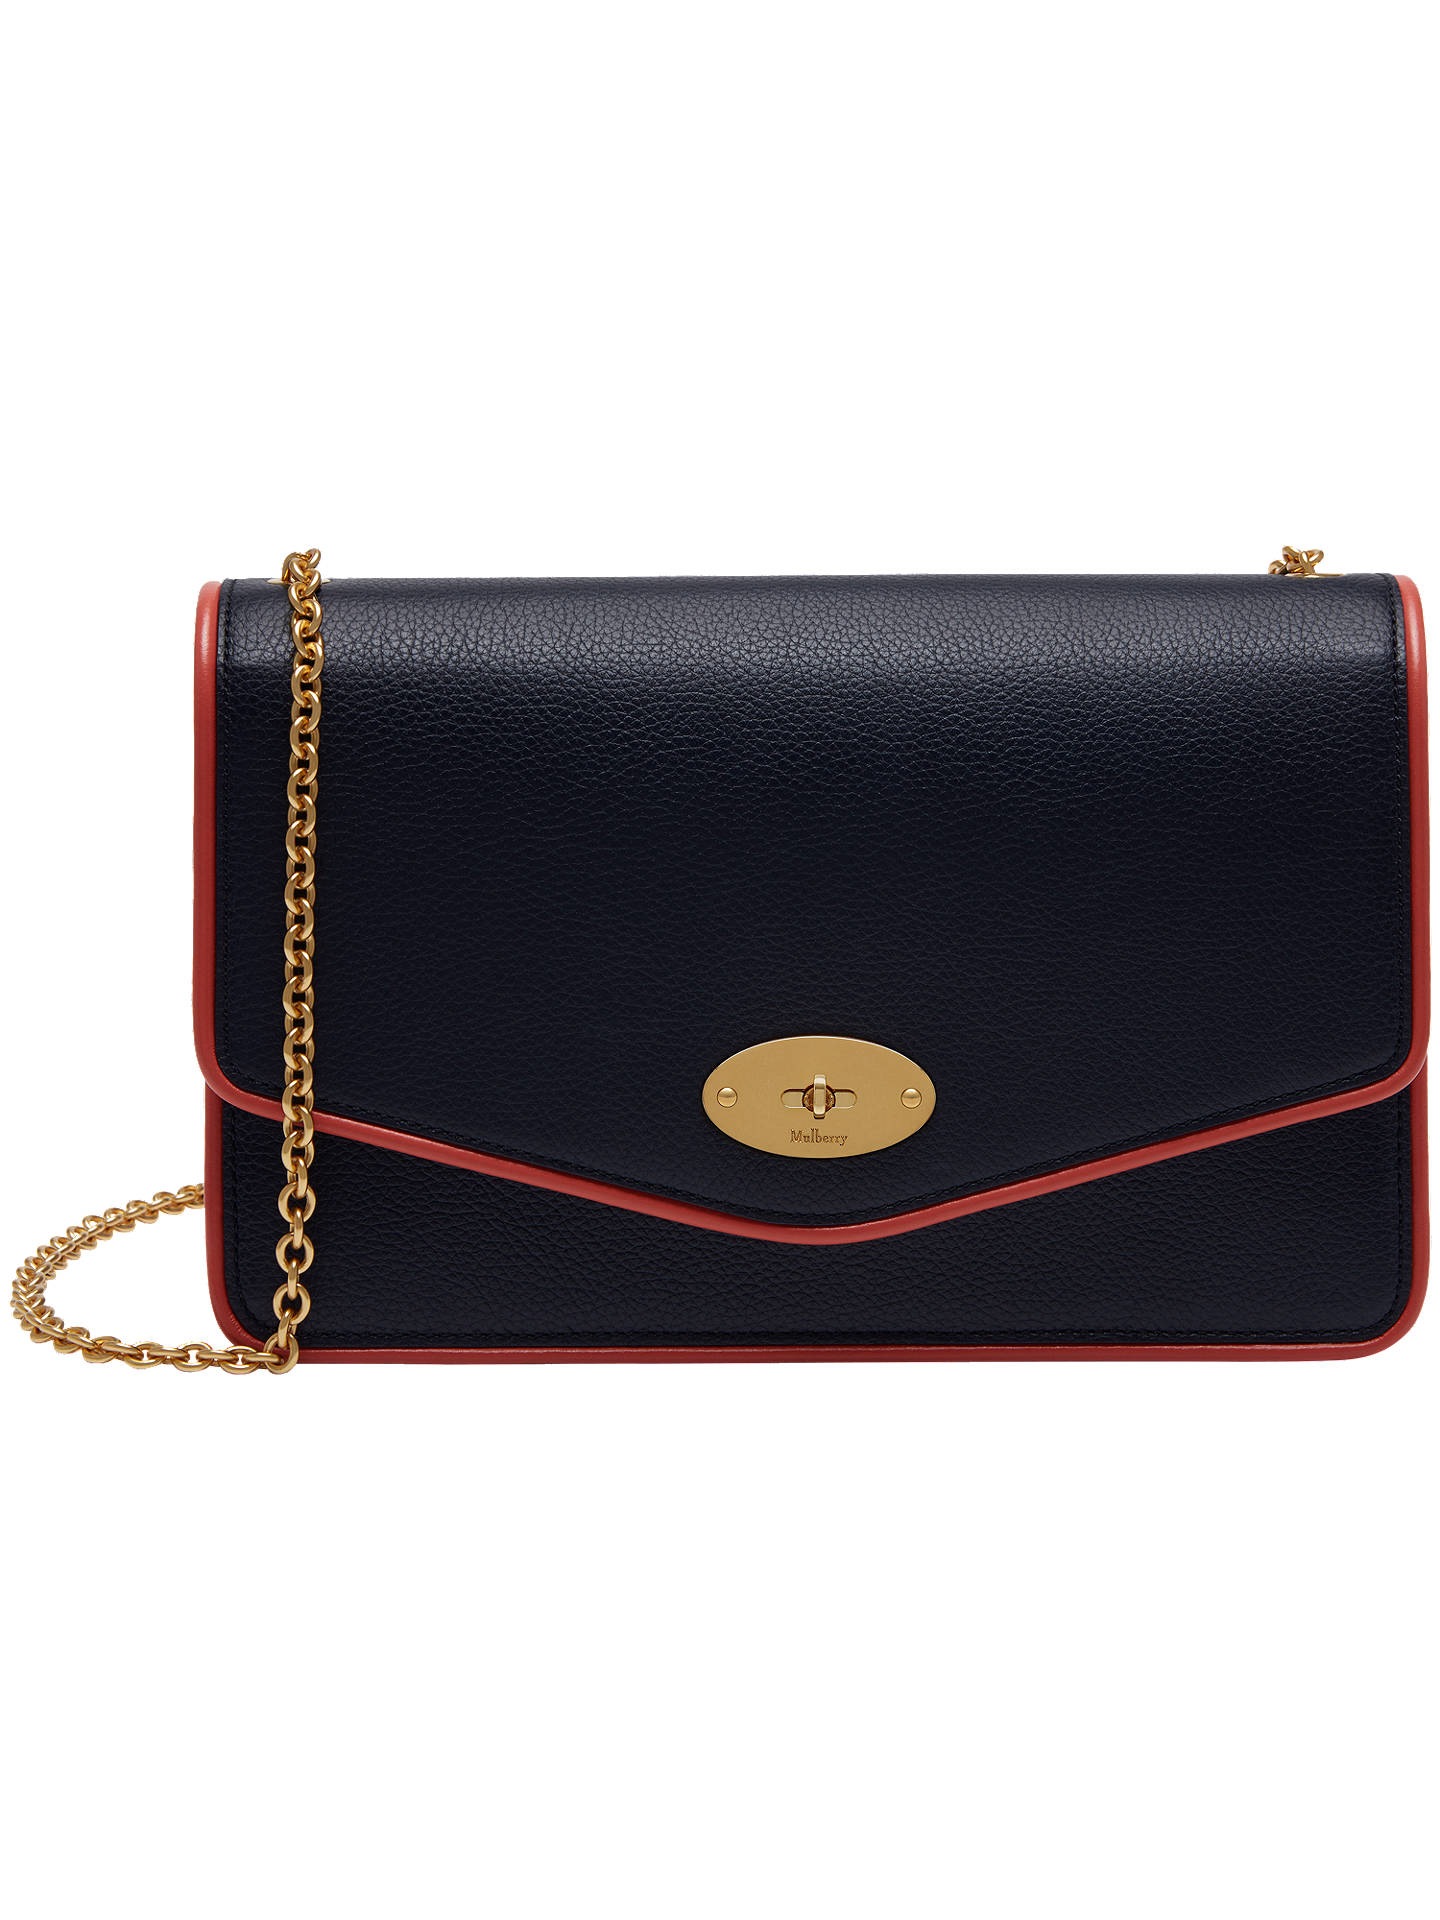 ed70084899 Mulberry Darley Small Classic Grain Leather Piping Cross Body Bag ...